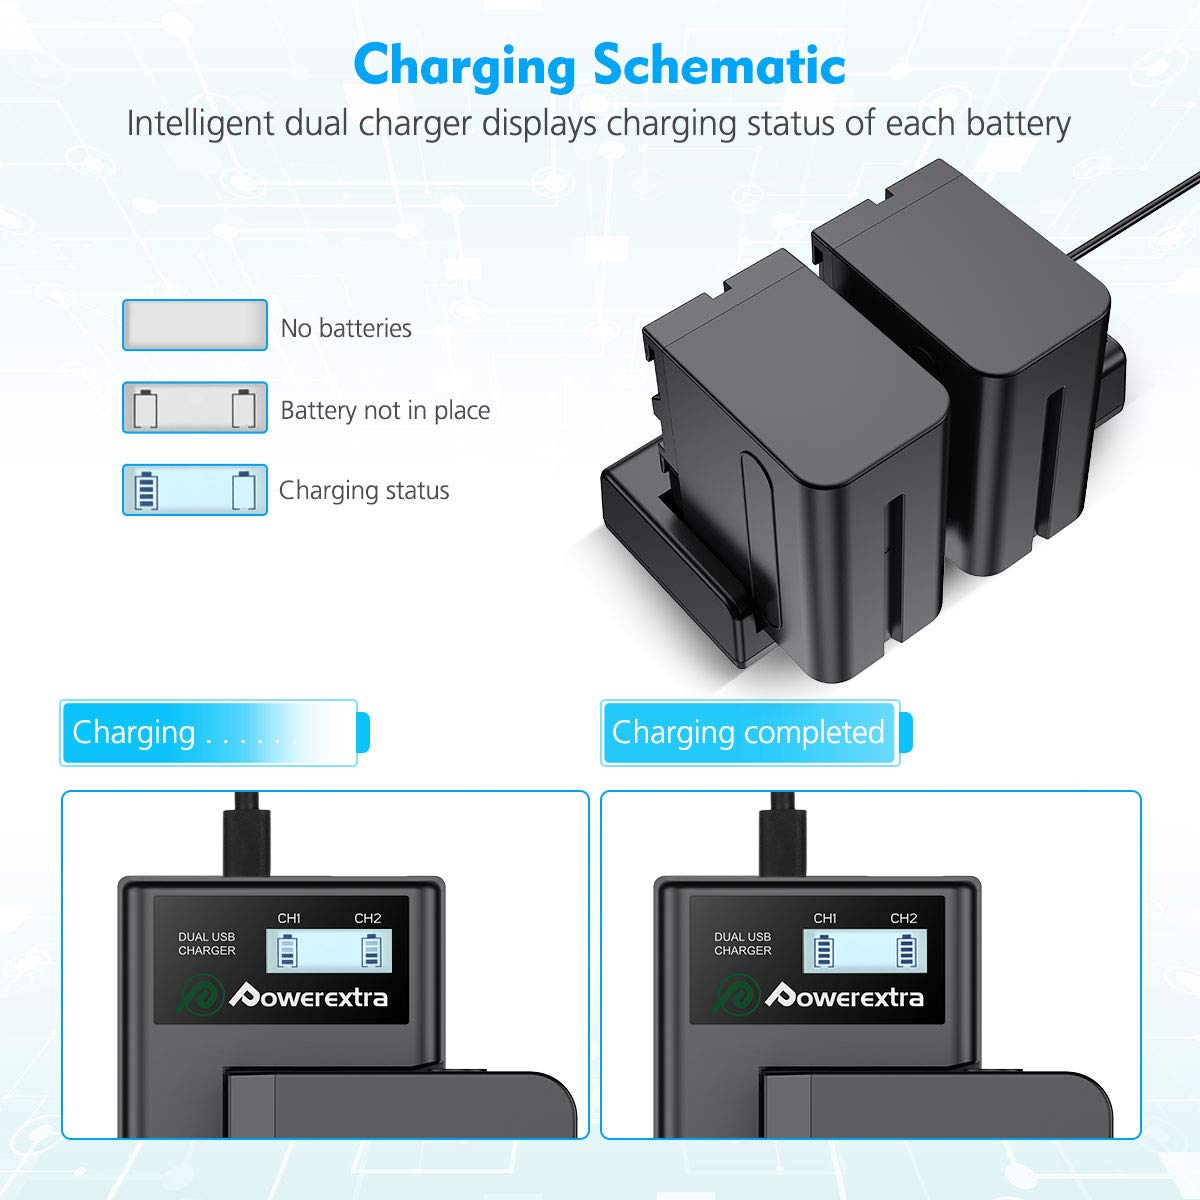 Powerextra 2 Pack Replacement Sony NP-F970 Battery and Smart LCD Display Dual USB Charger for Sony NP-F930 NP-F950 NP-F960 Battery and Sony CCD-SC55, TR516, TR716, TR818, TR910, TR917 by Powerextra (Image #5)